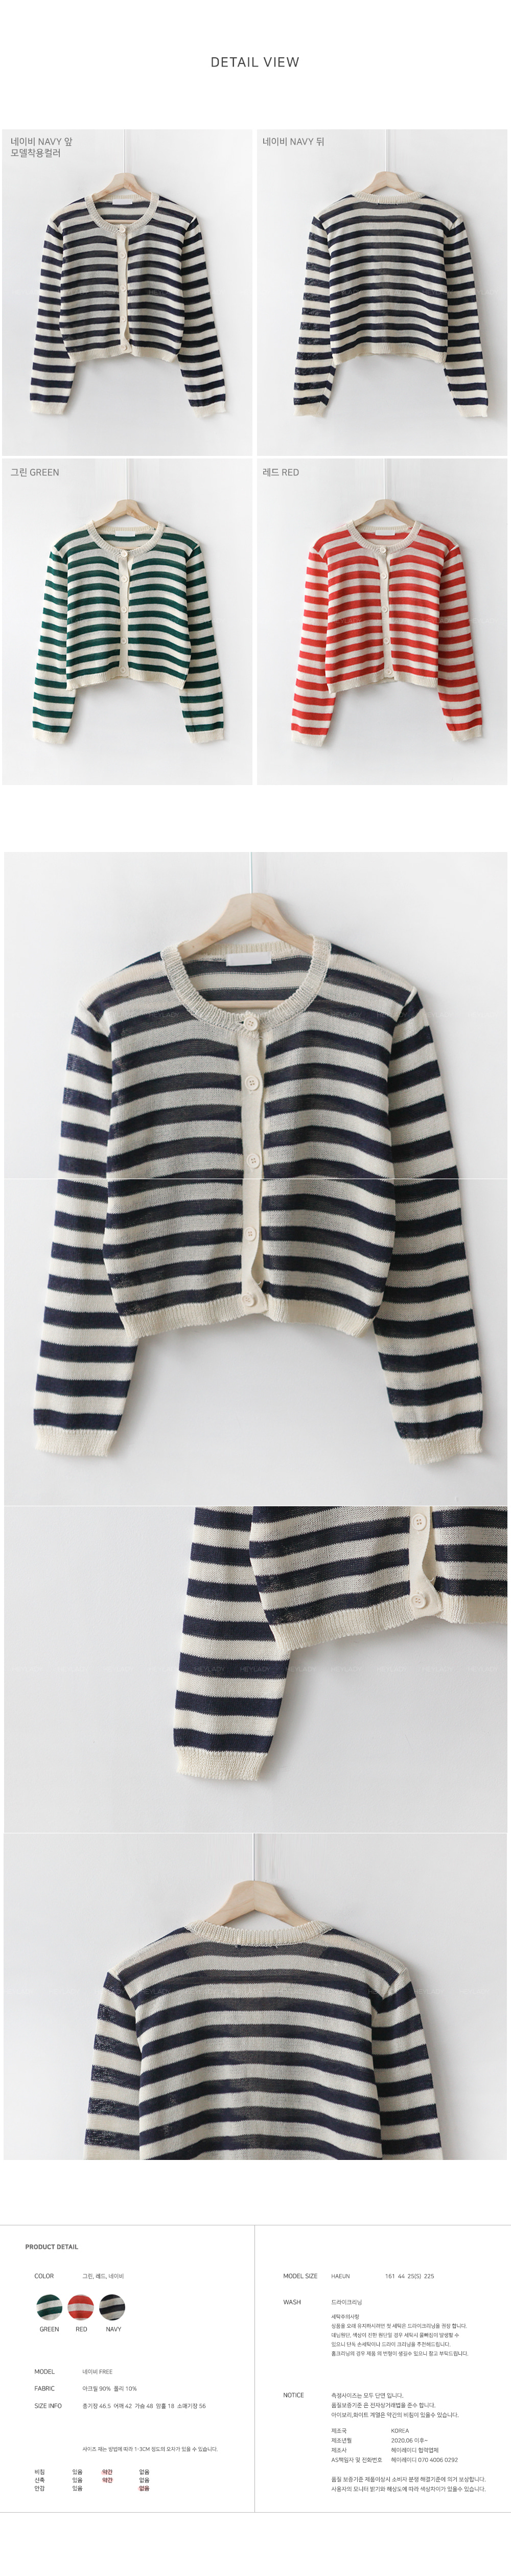 Reviewer Striped Cardigan